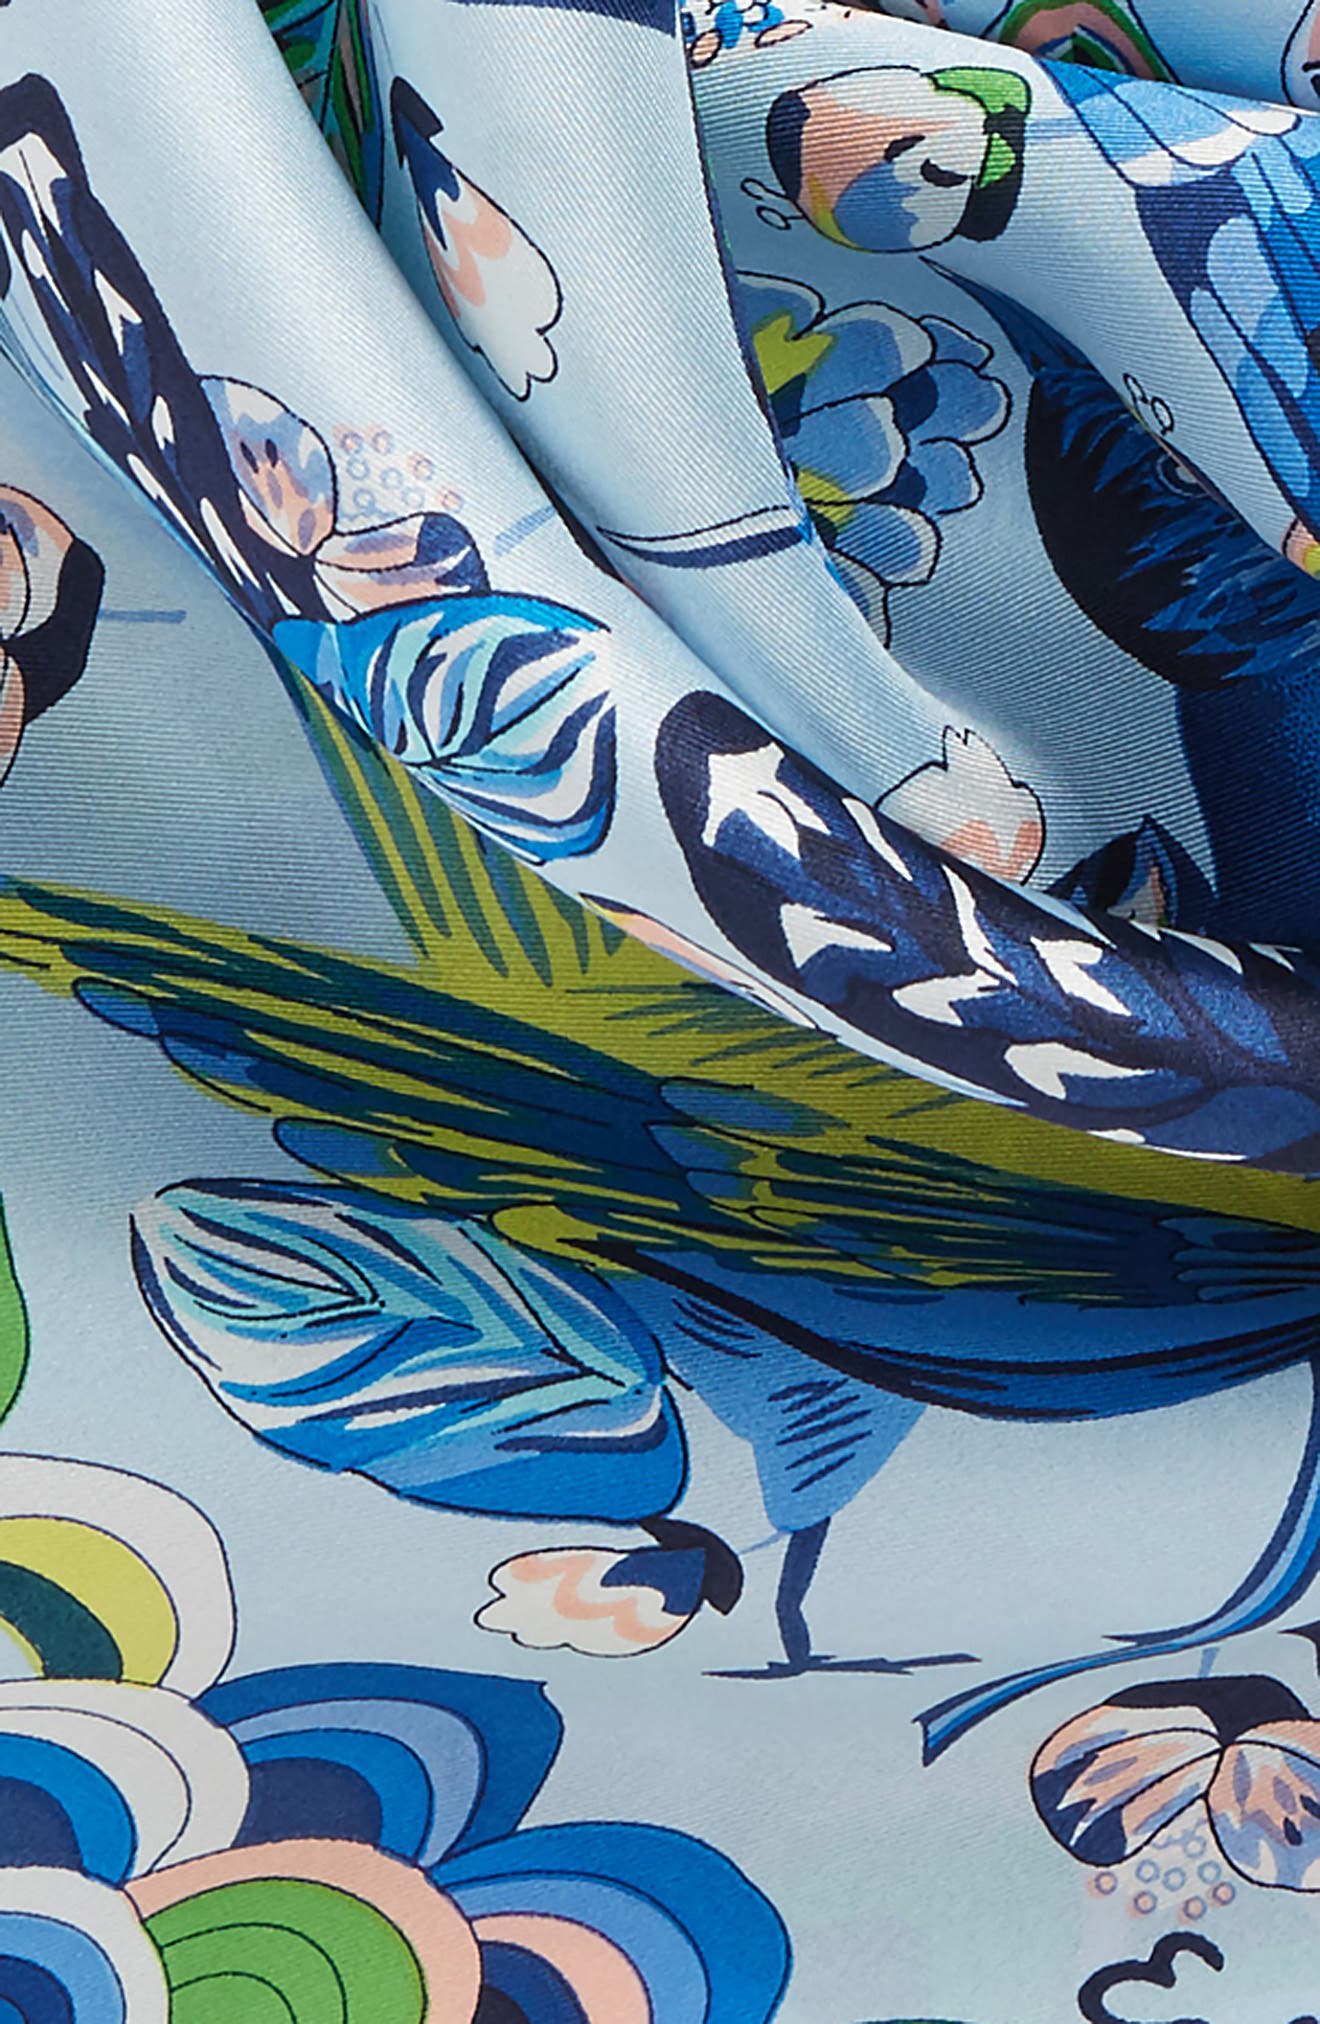 Flight of Fancy Square Silk Scarf,                             Alternate thumbnail 4, color,                             451